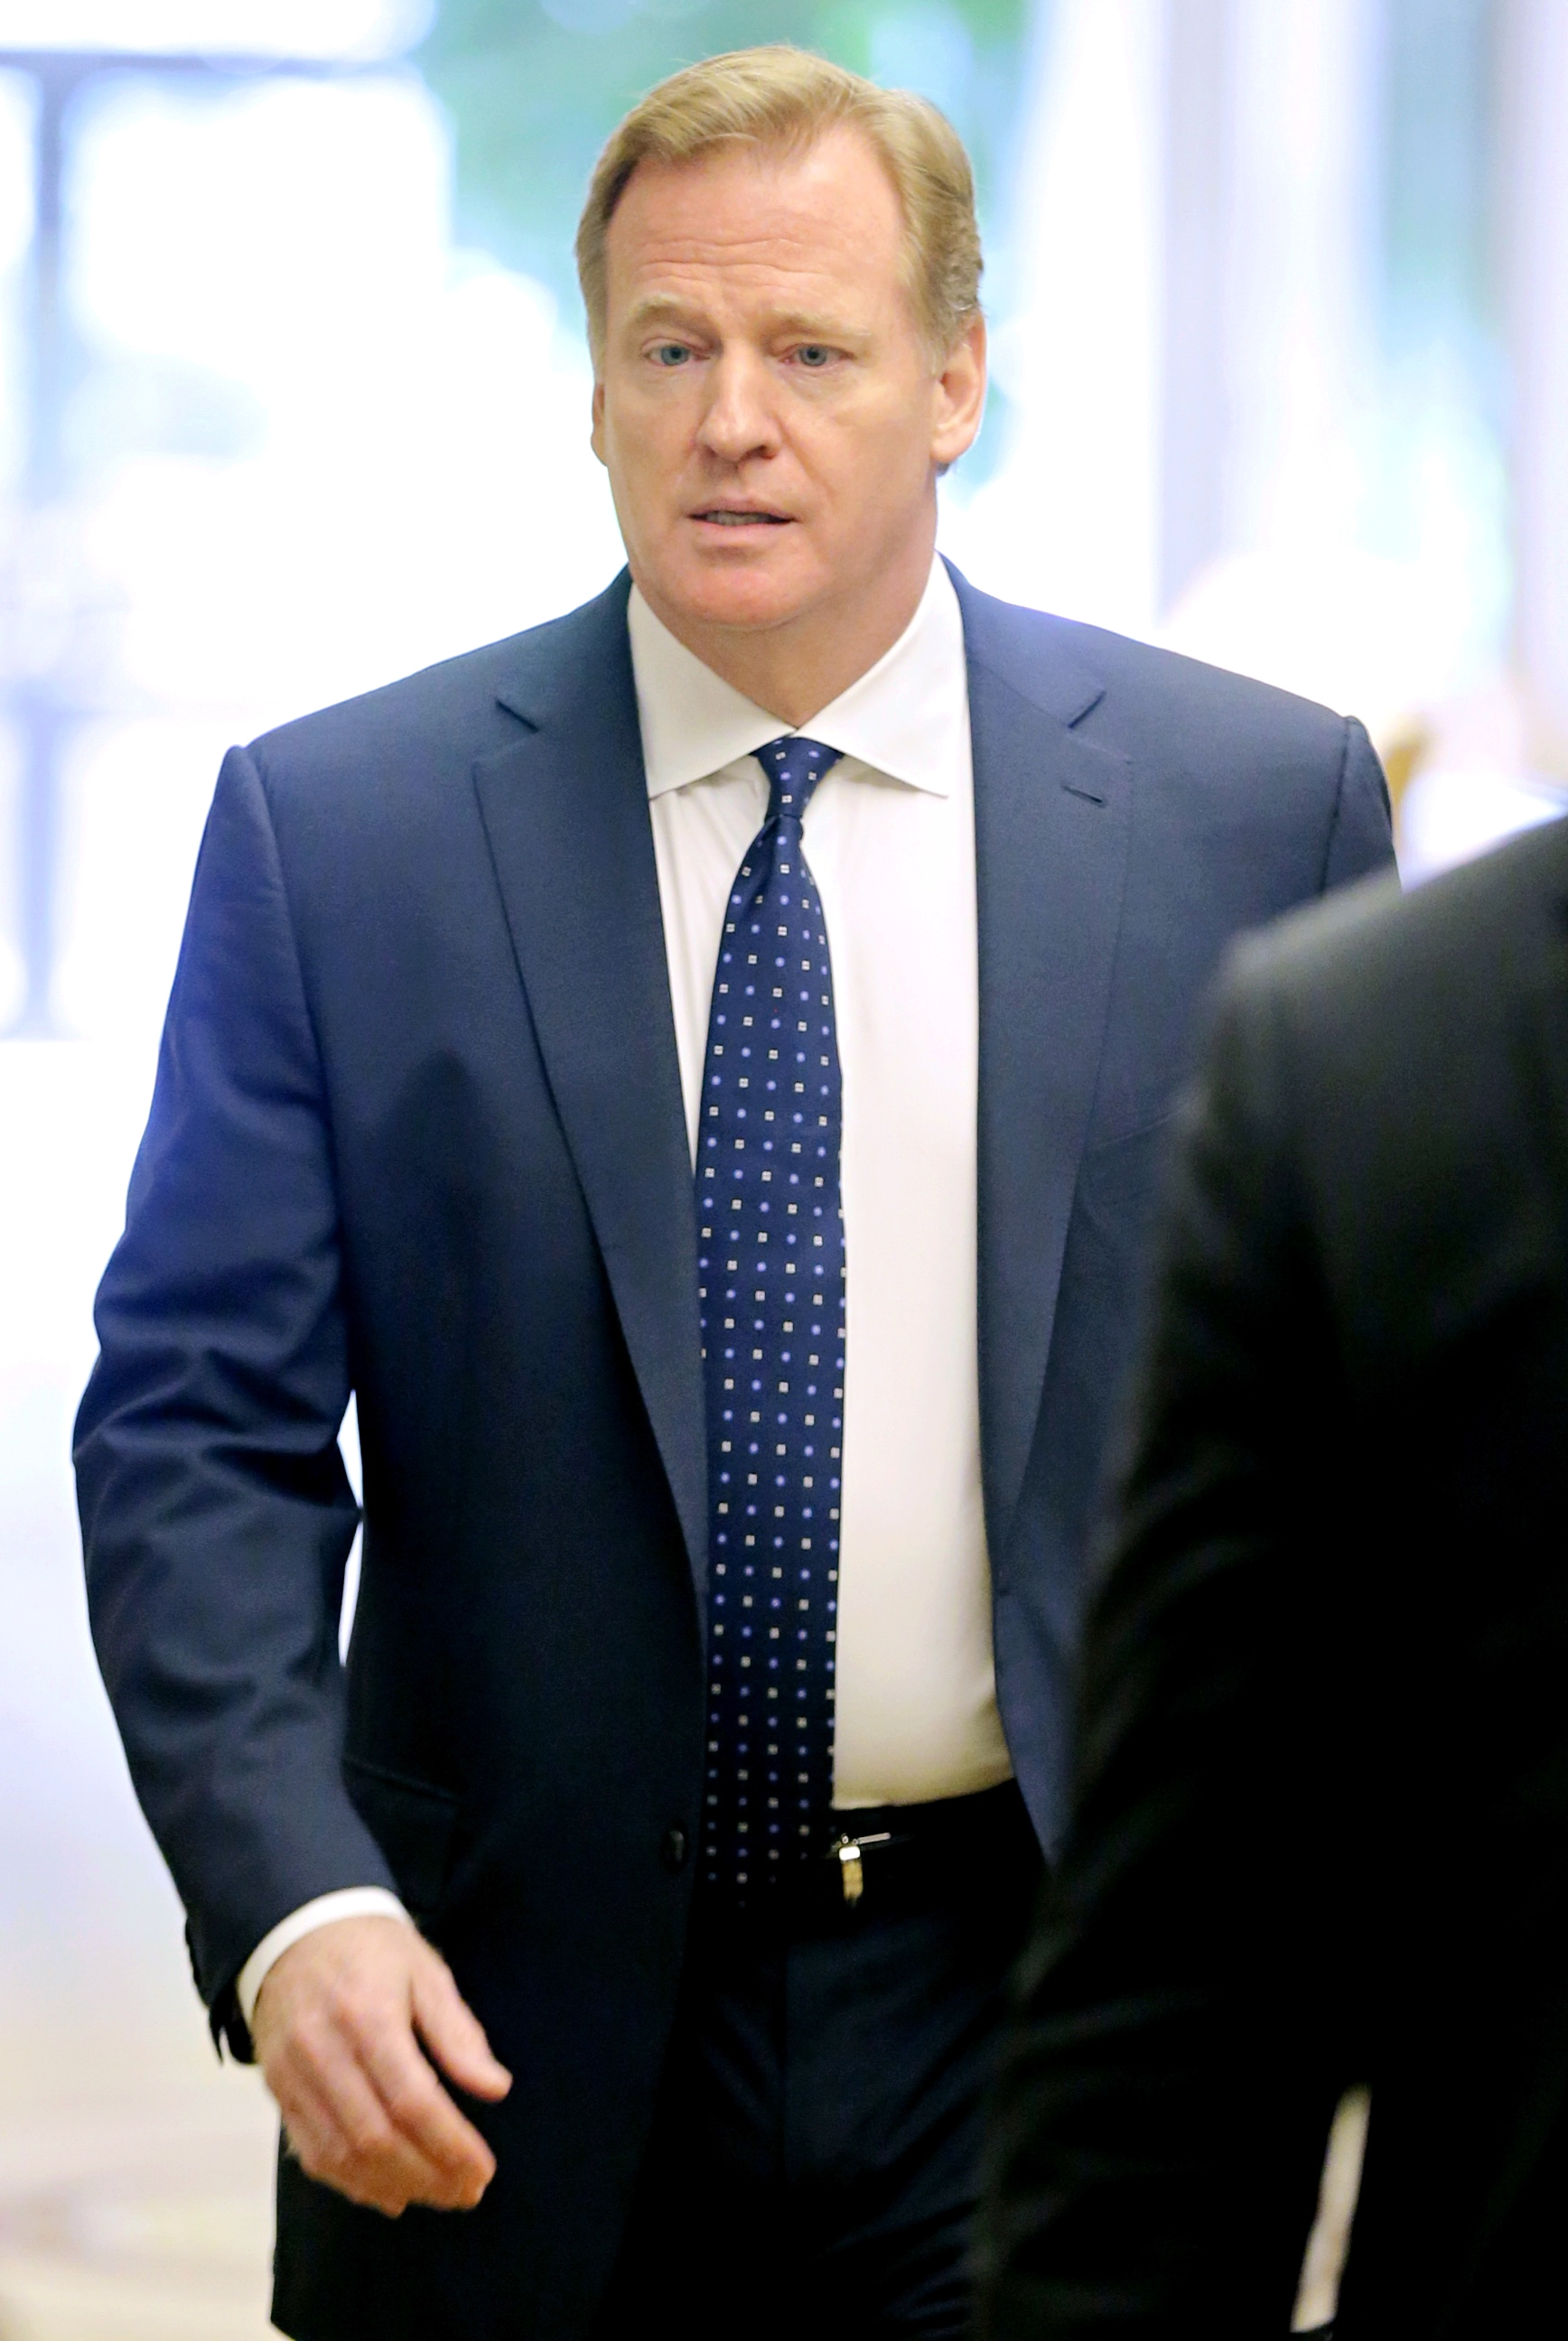 NFL Commissioner Roger Goodell arrives for an NFL owners meeting in Irving, Texas, Wednesday, Dec. 2, 2015. (AP Photo/Brandon Wade)